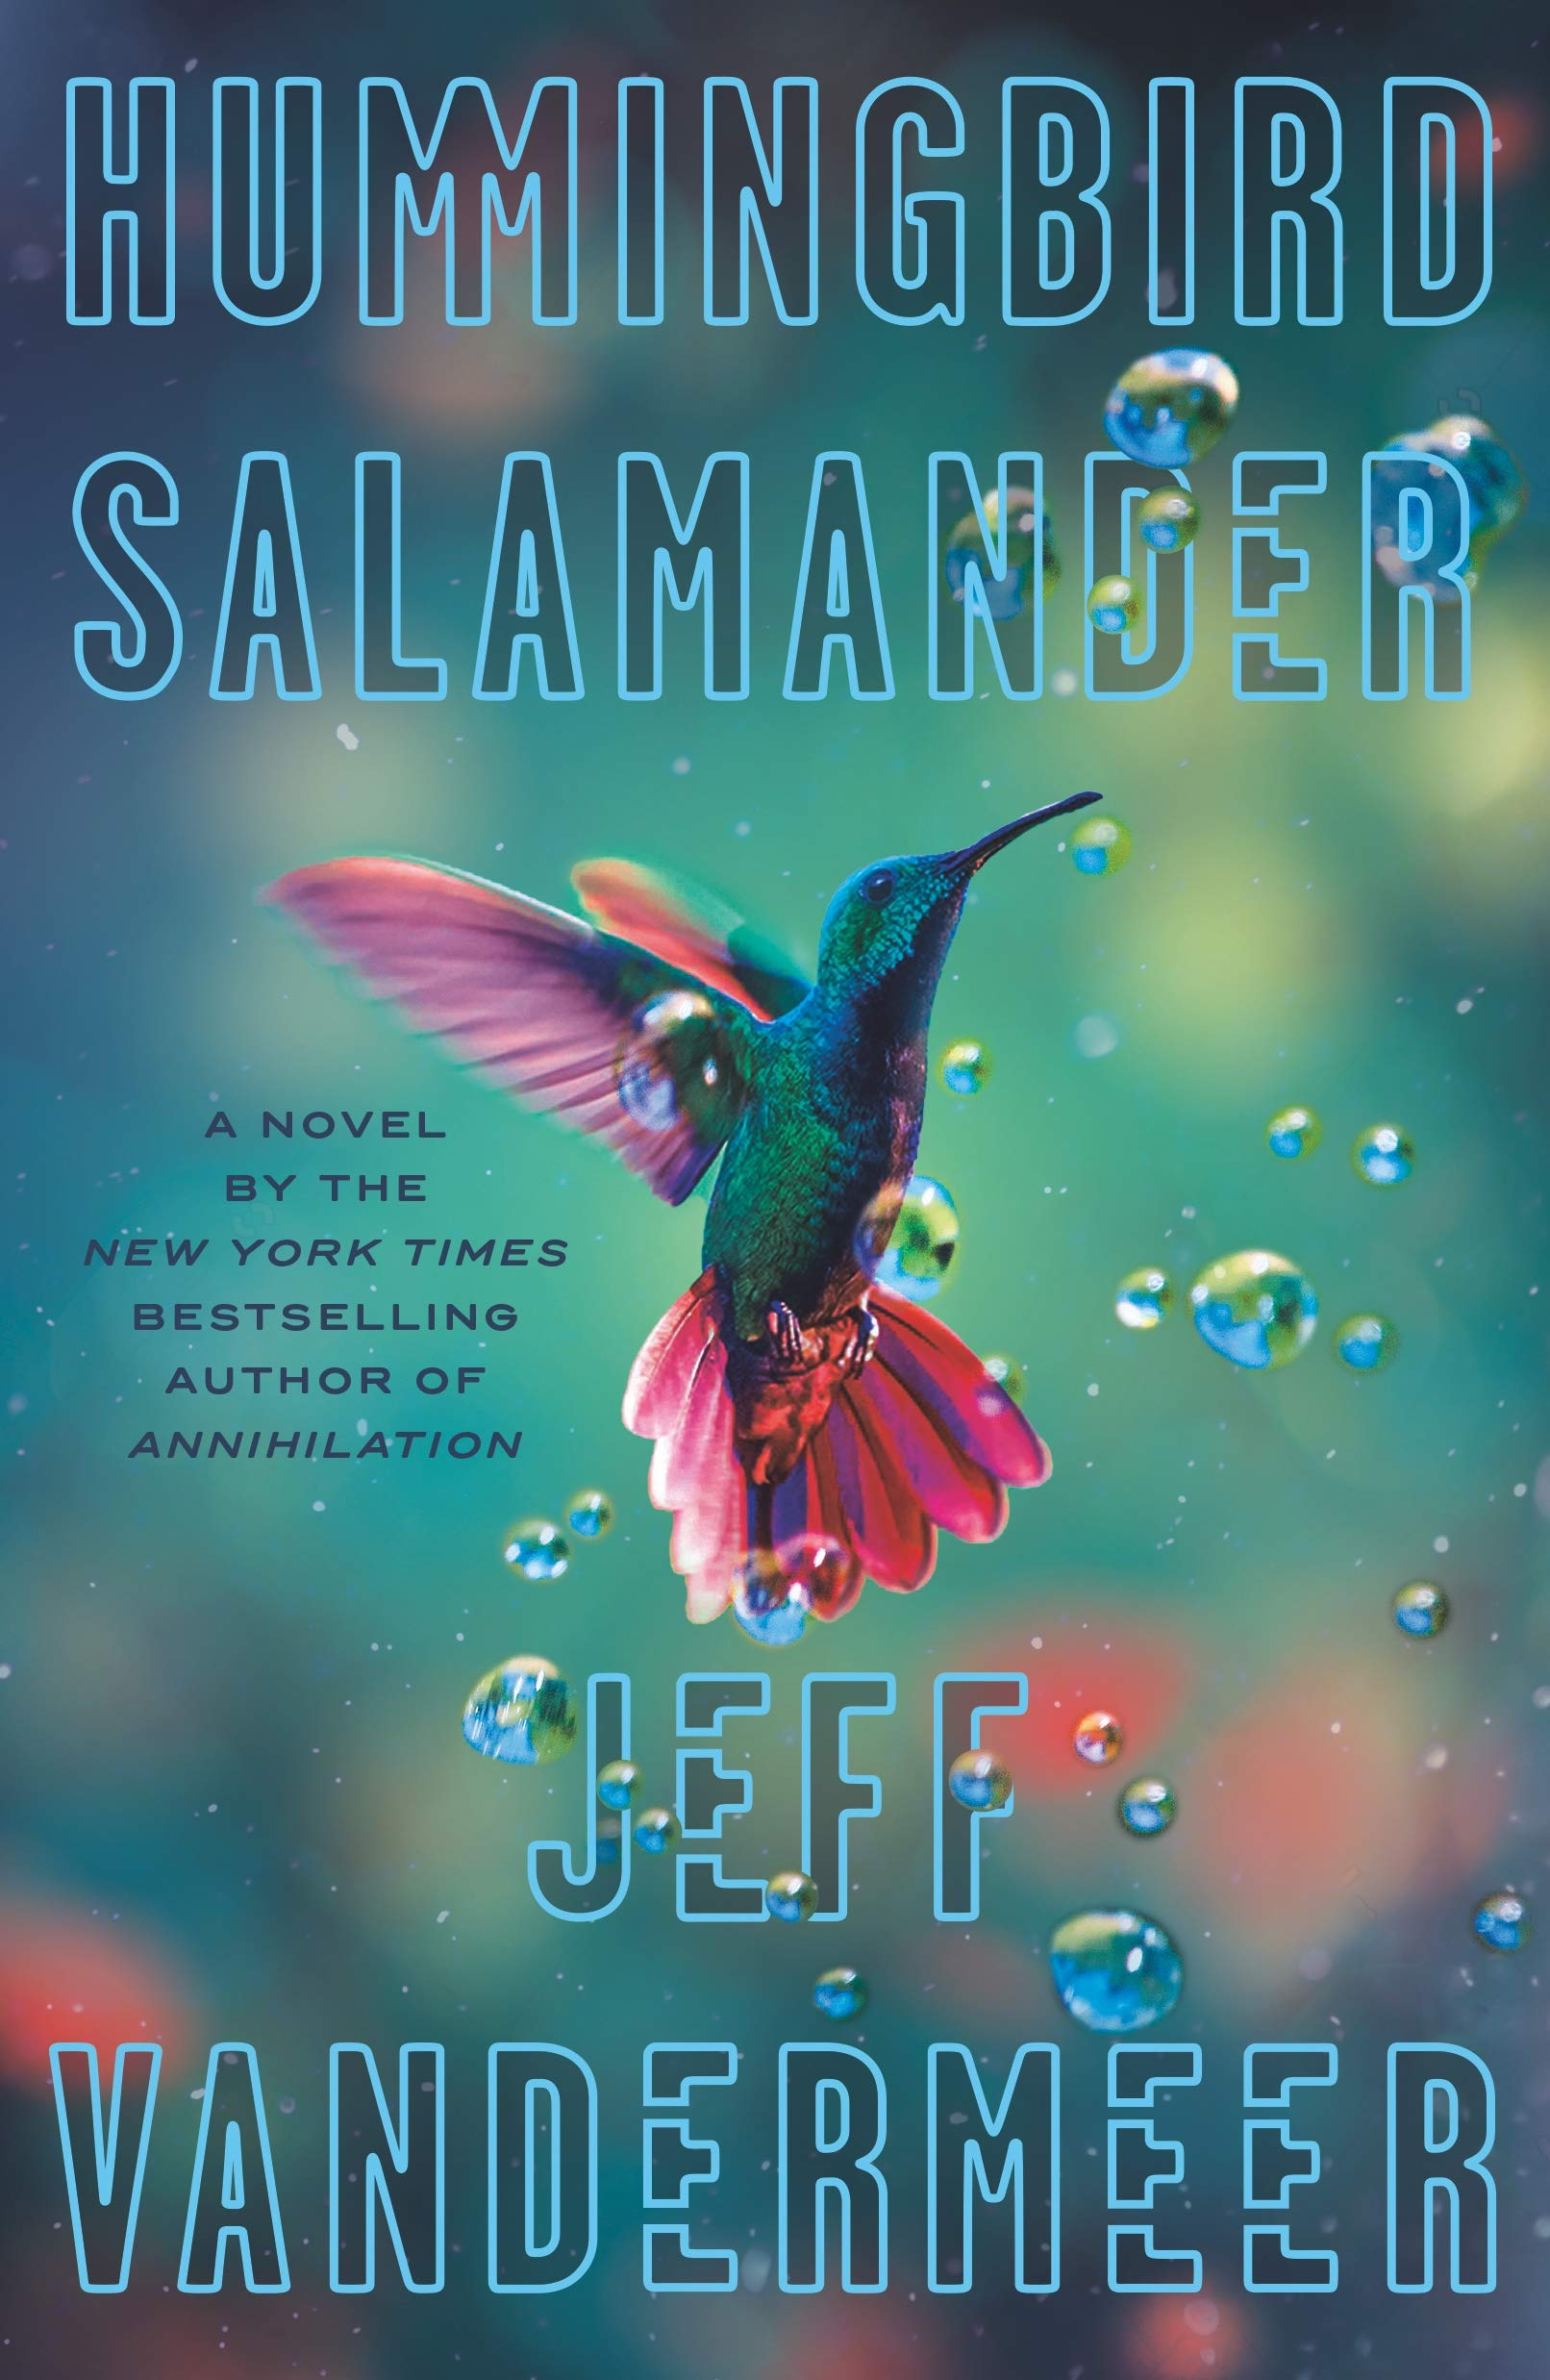 Picture of the cover of Hummingbird Salamander by Jeff Vandermeer